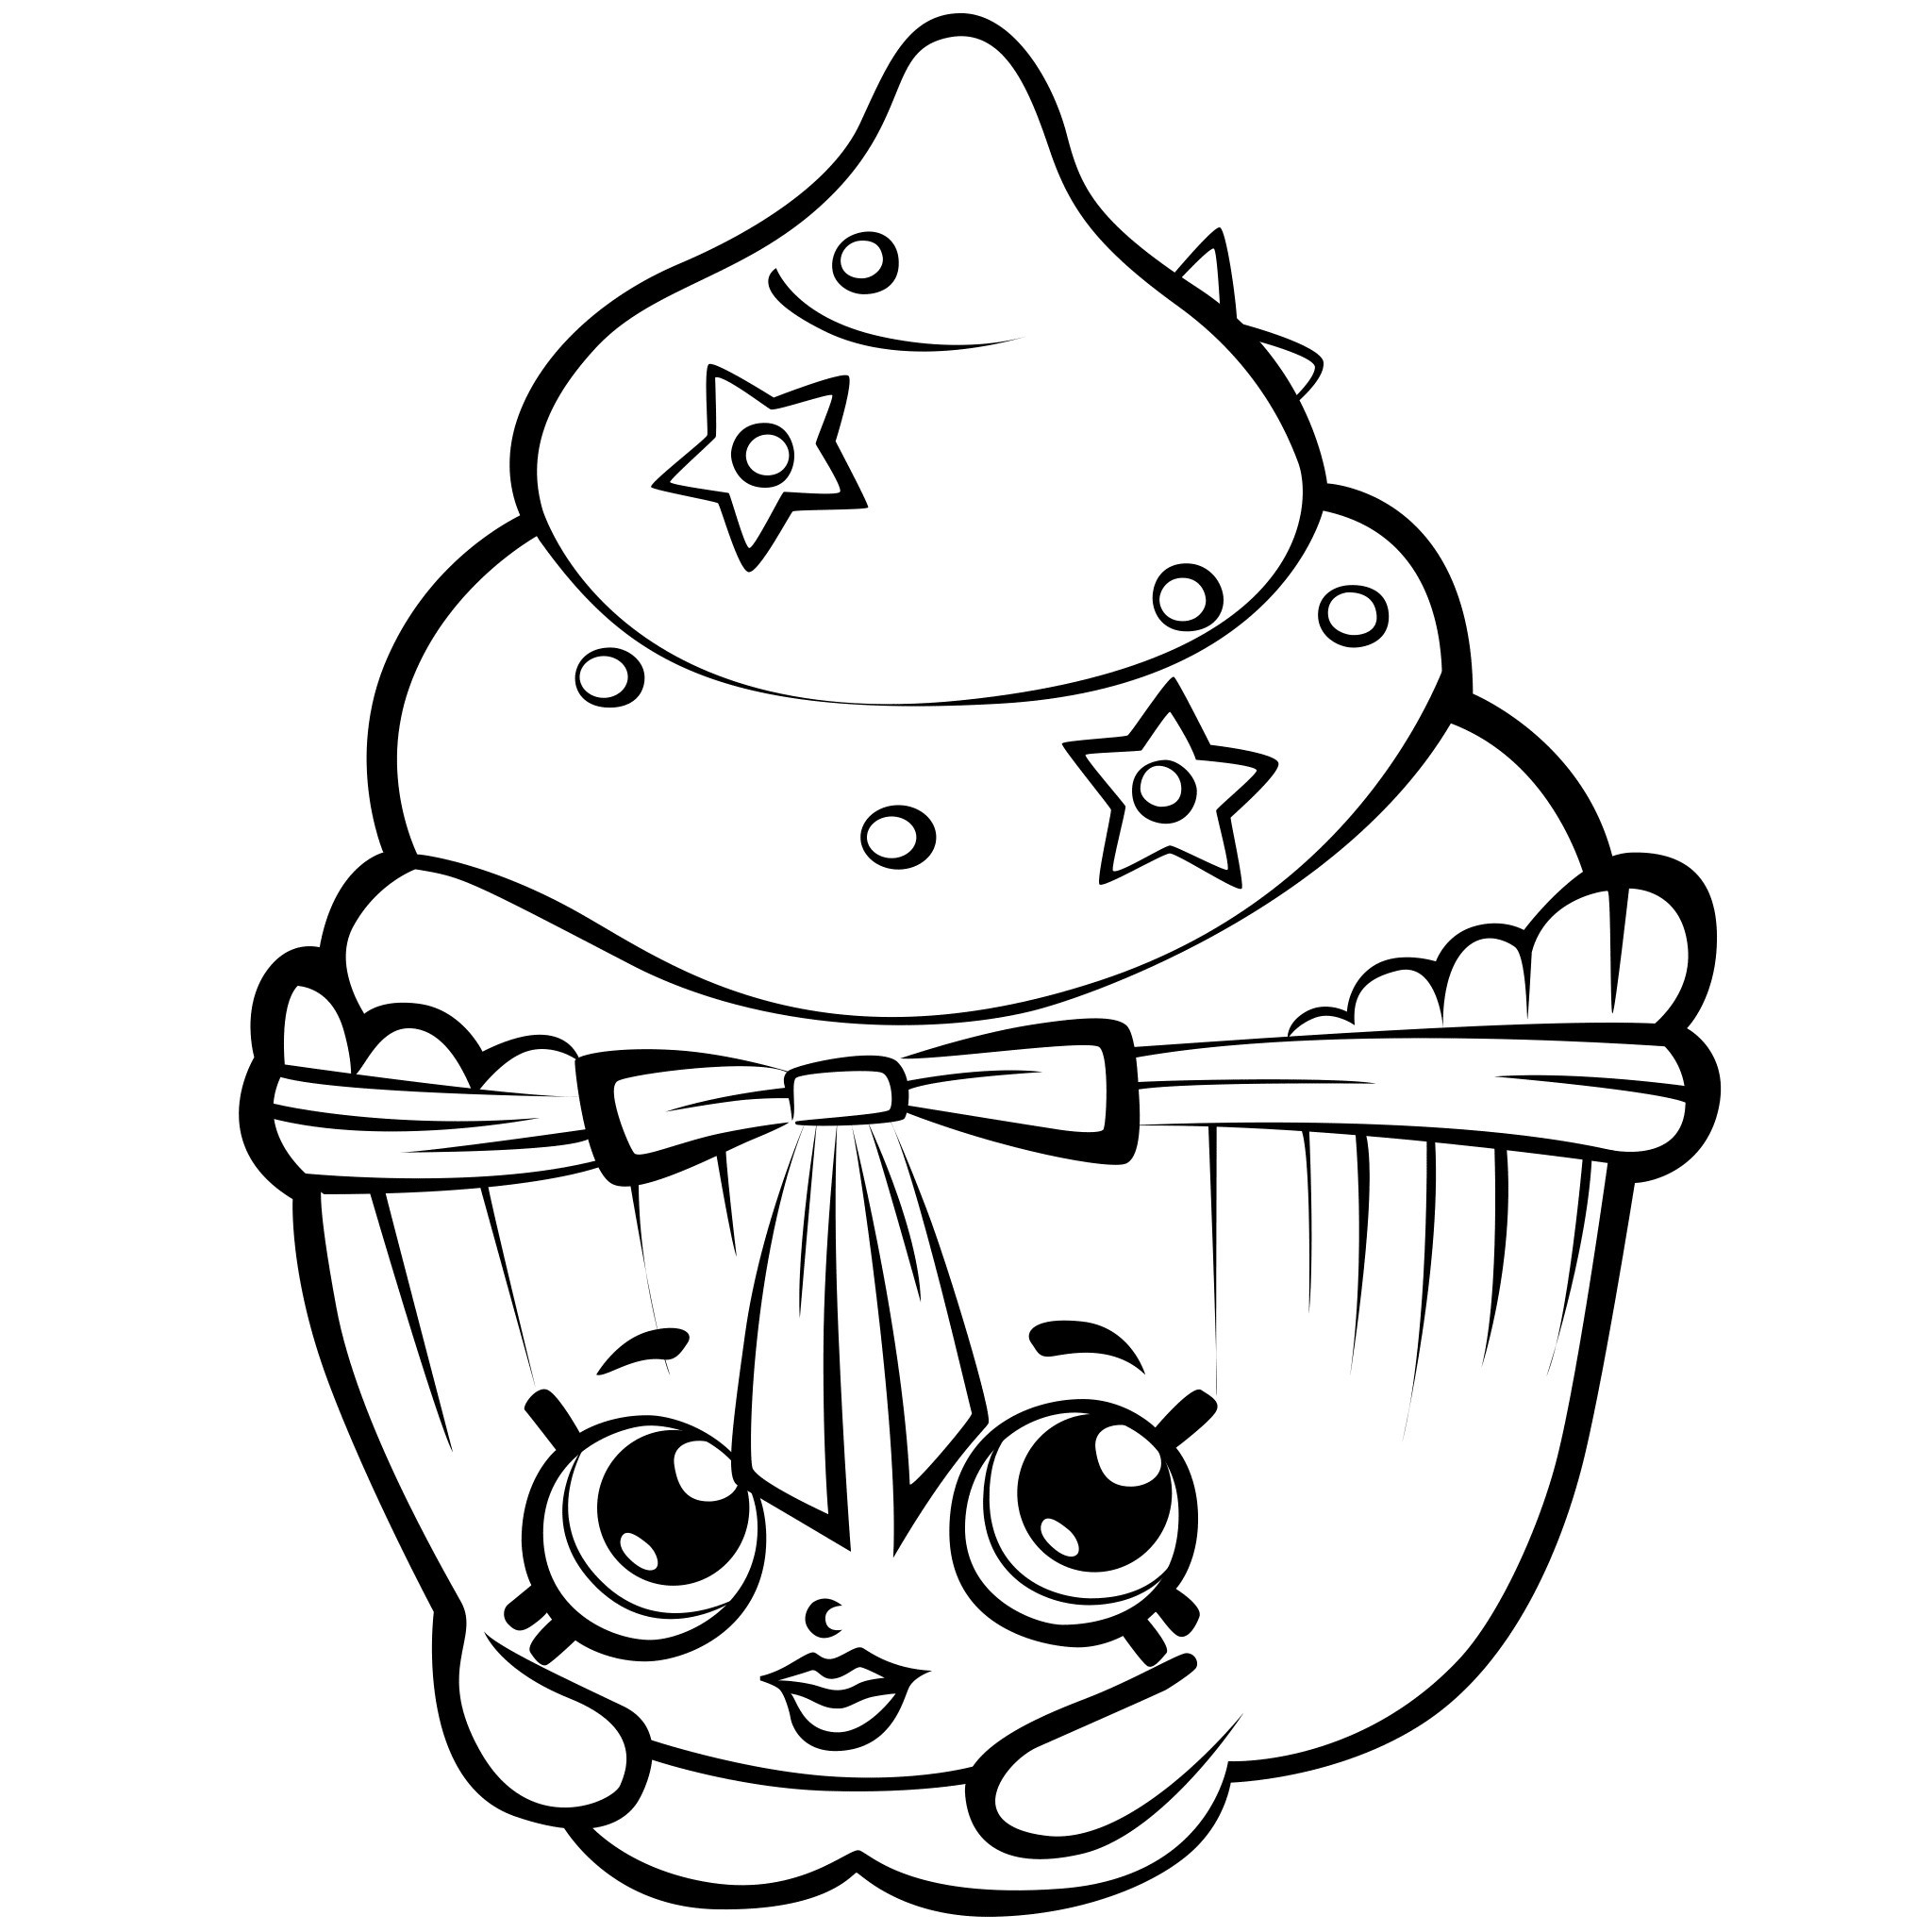 2048x2048 Print Shopkins Strawberry Smile Coloring Pages School Stuff Simple